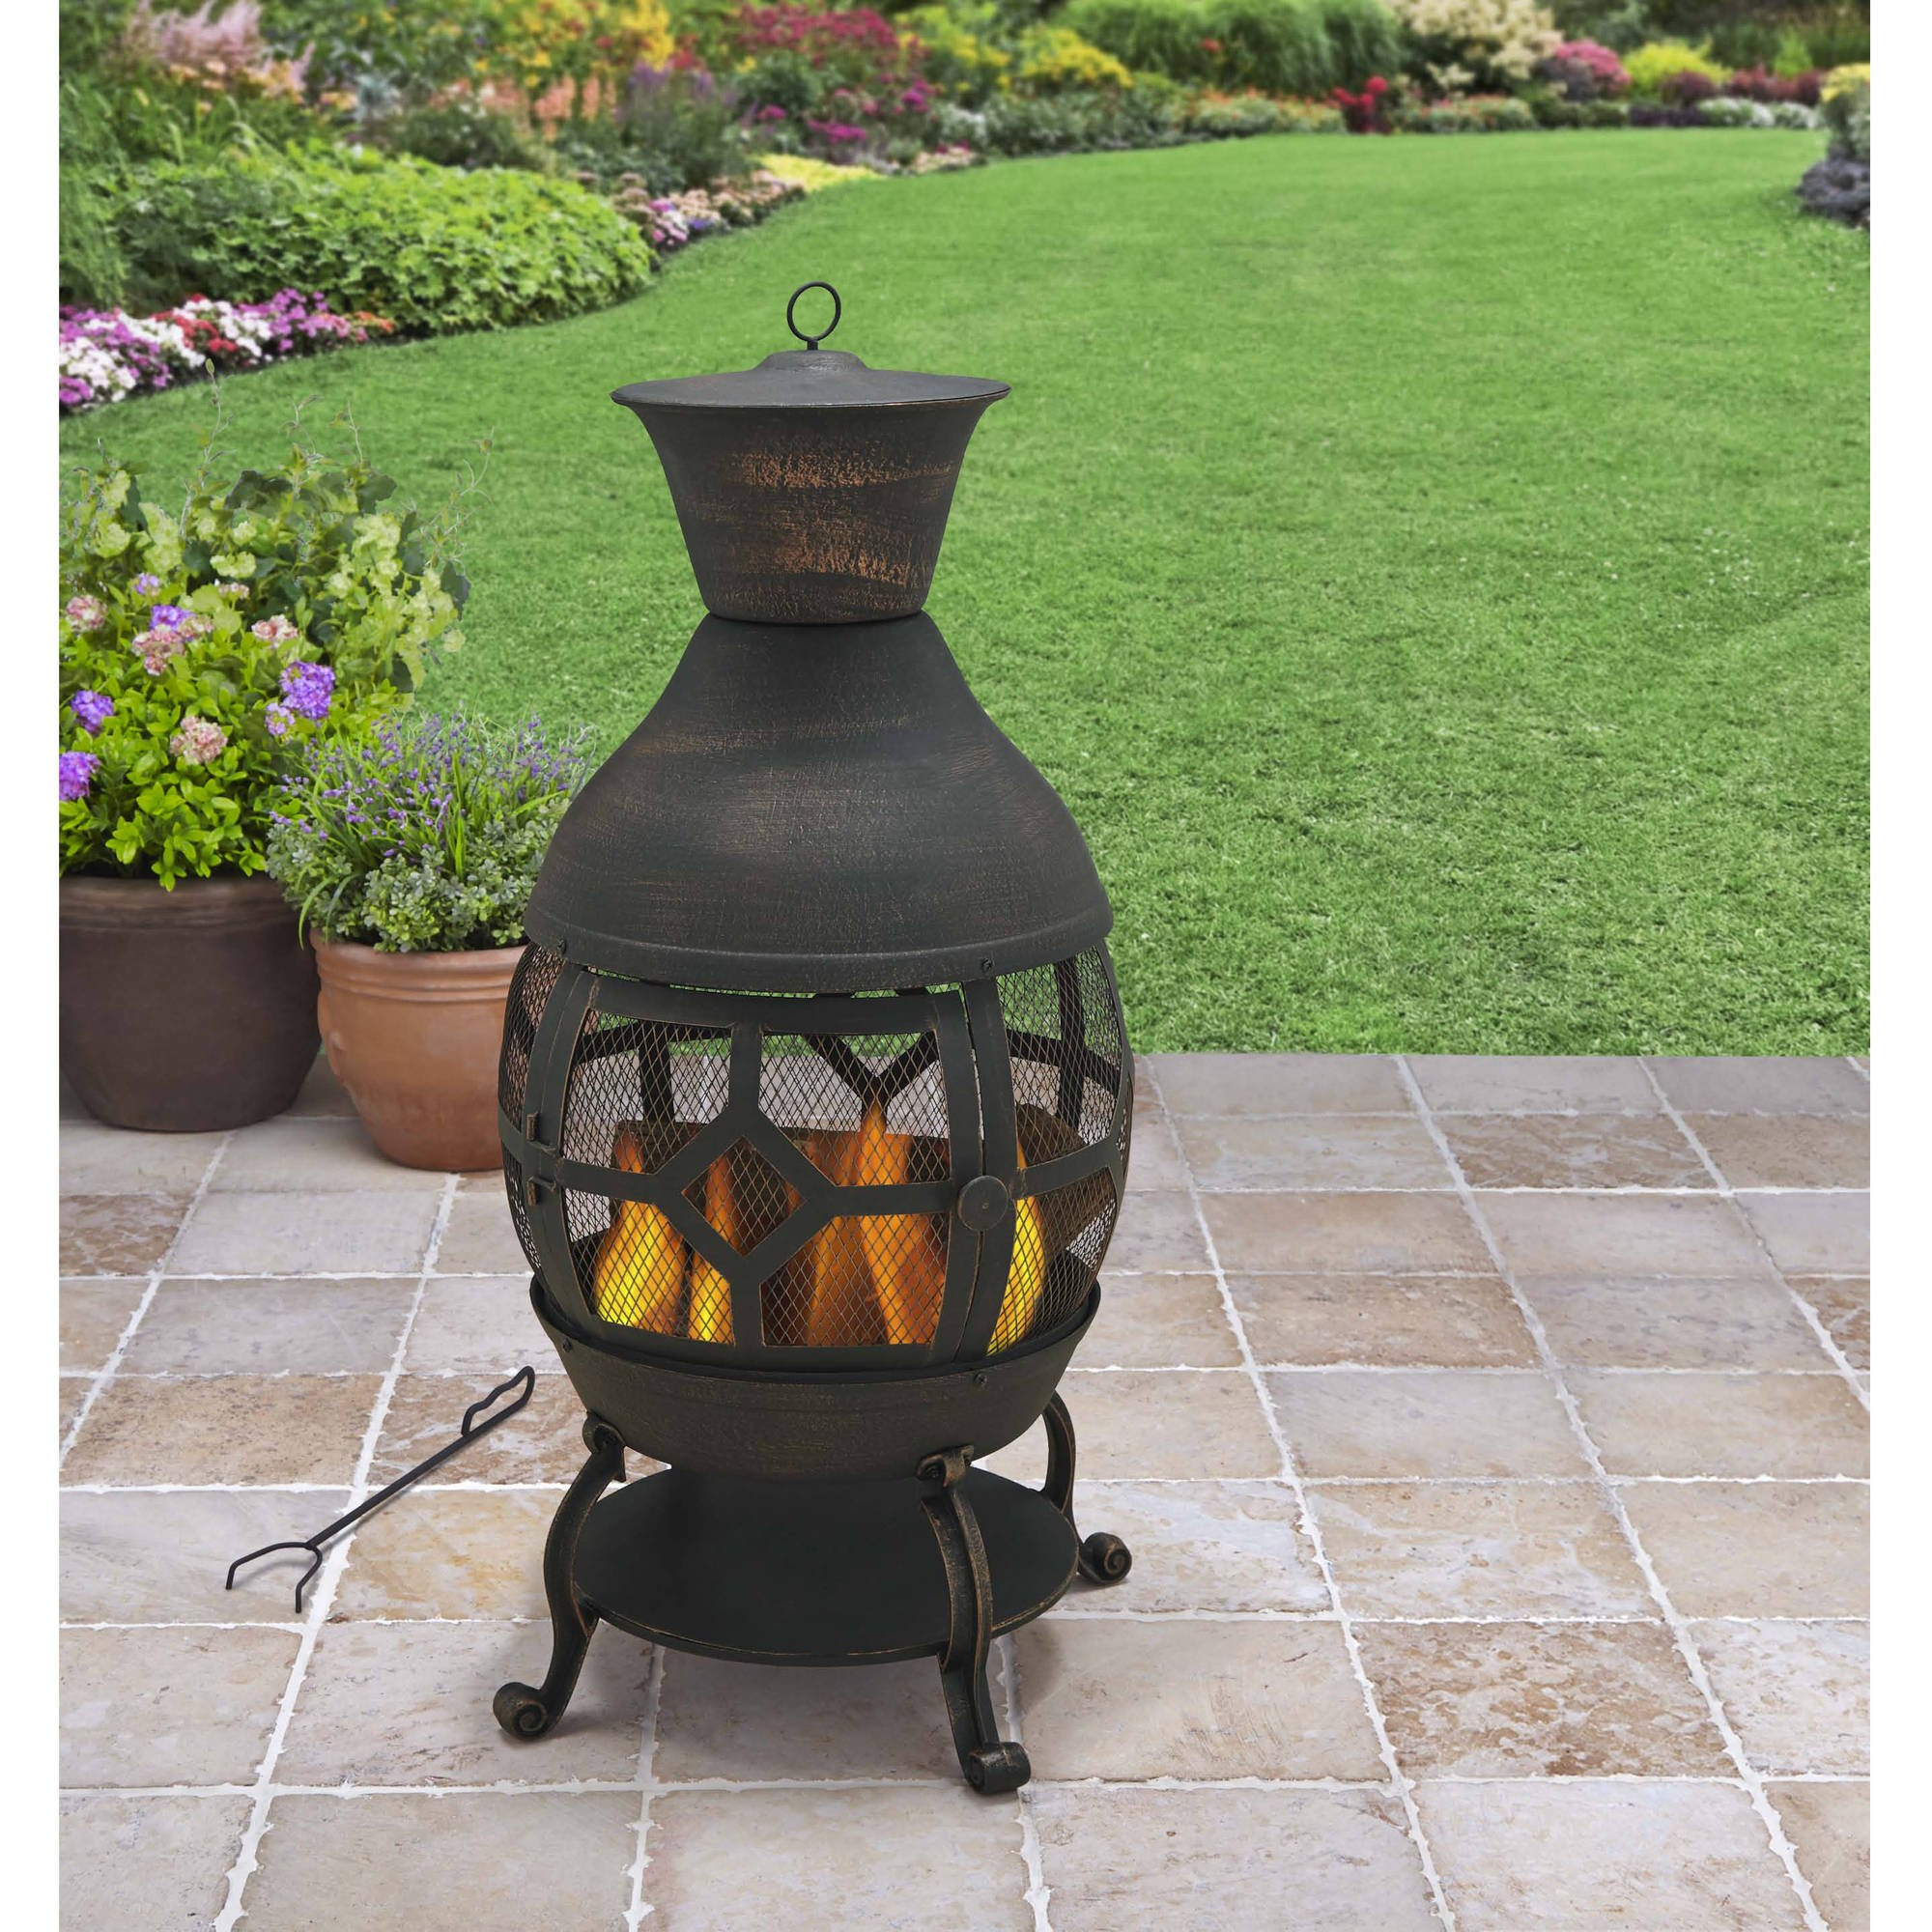 B H & G C0. Better Homes and Gardens Antique Bronze Cast Iron Chiminea, Durable cast Iron Construction! by B H & G C0.